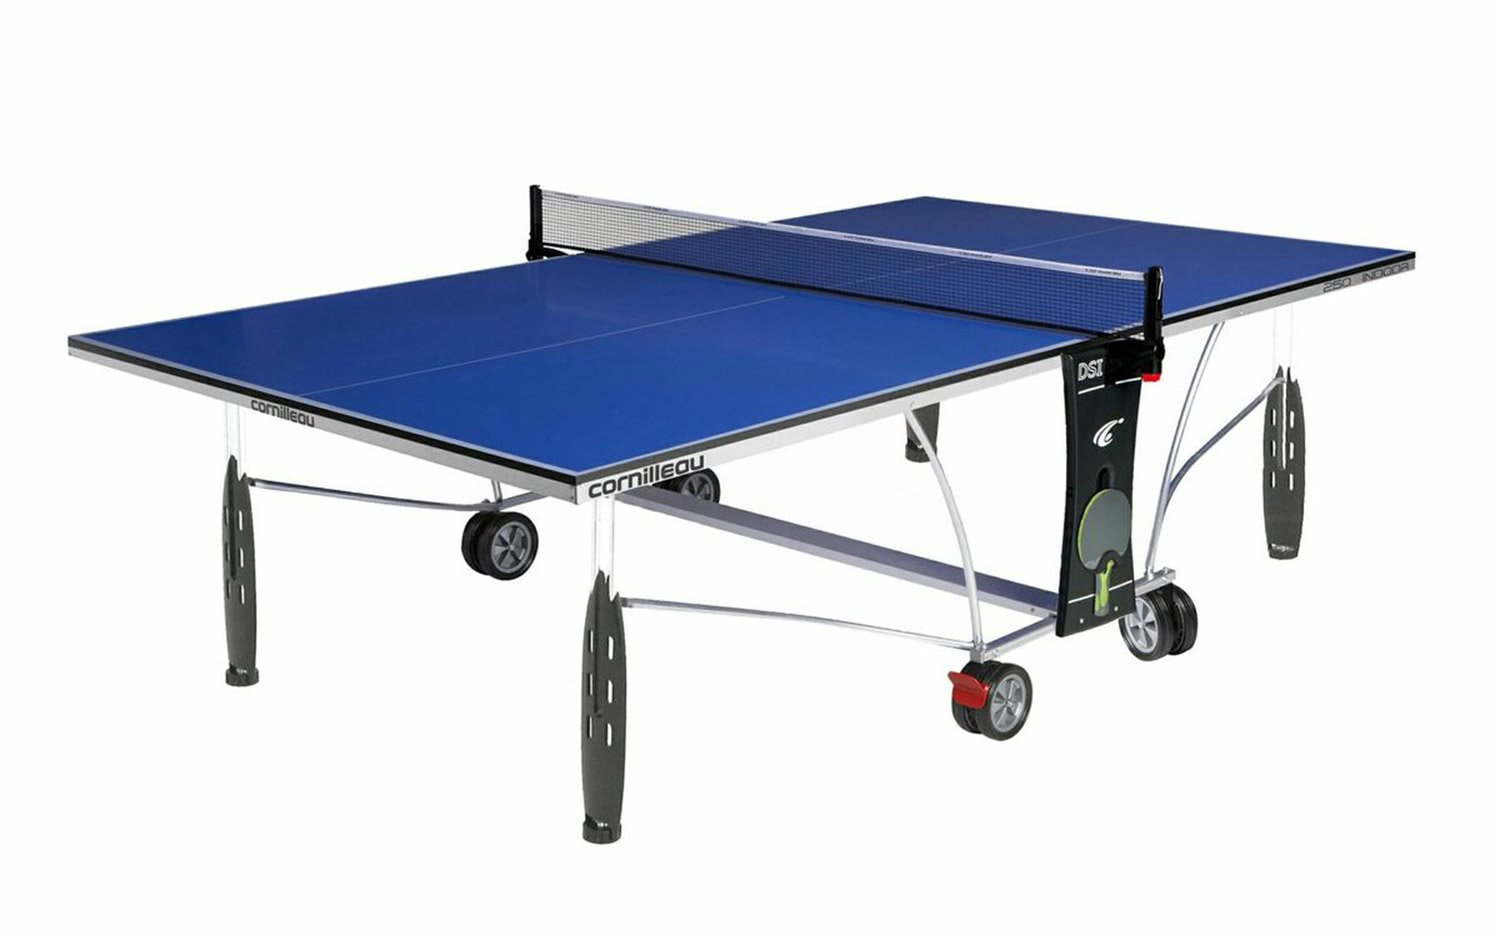 Cornilleau sport 250 rollaway indoor table tennis liberty games - Table ping pong cornilleau outdoor ...